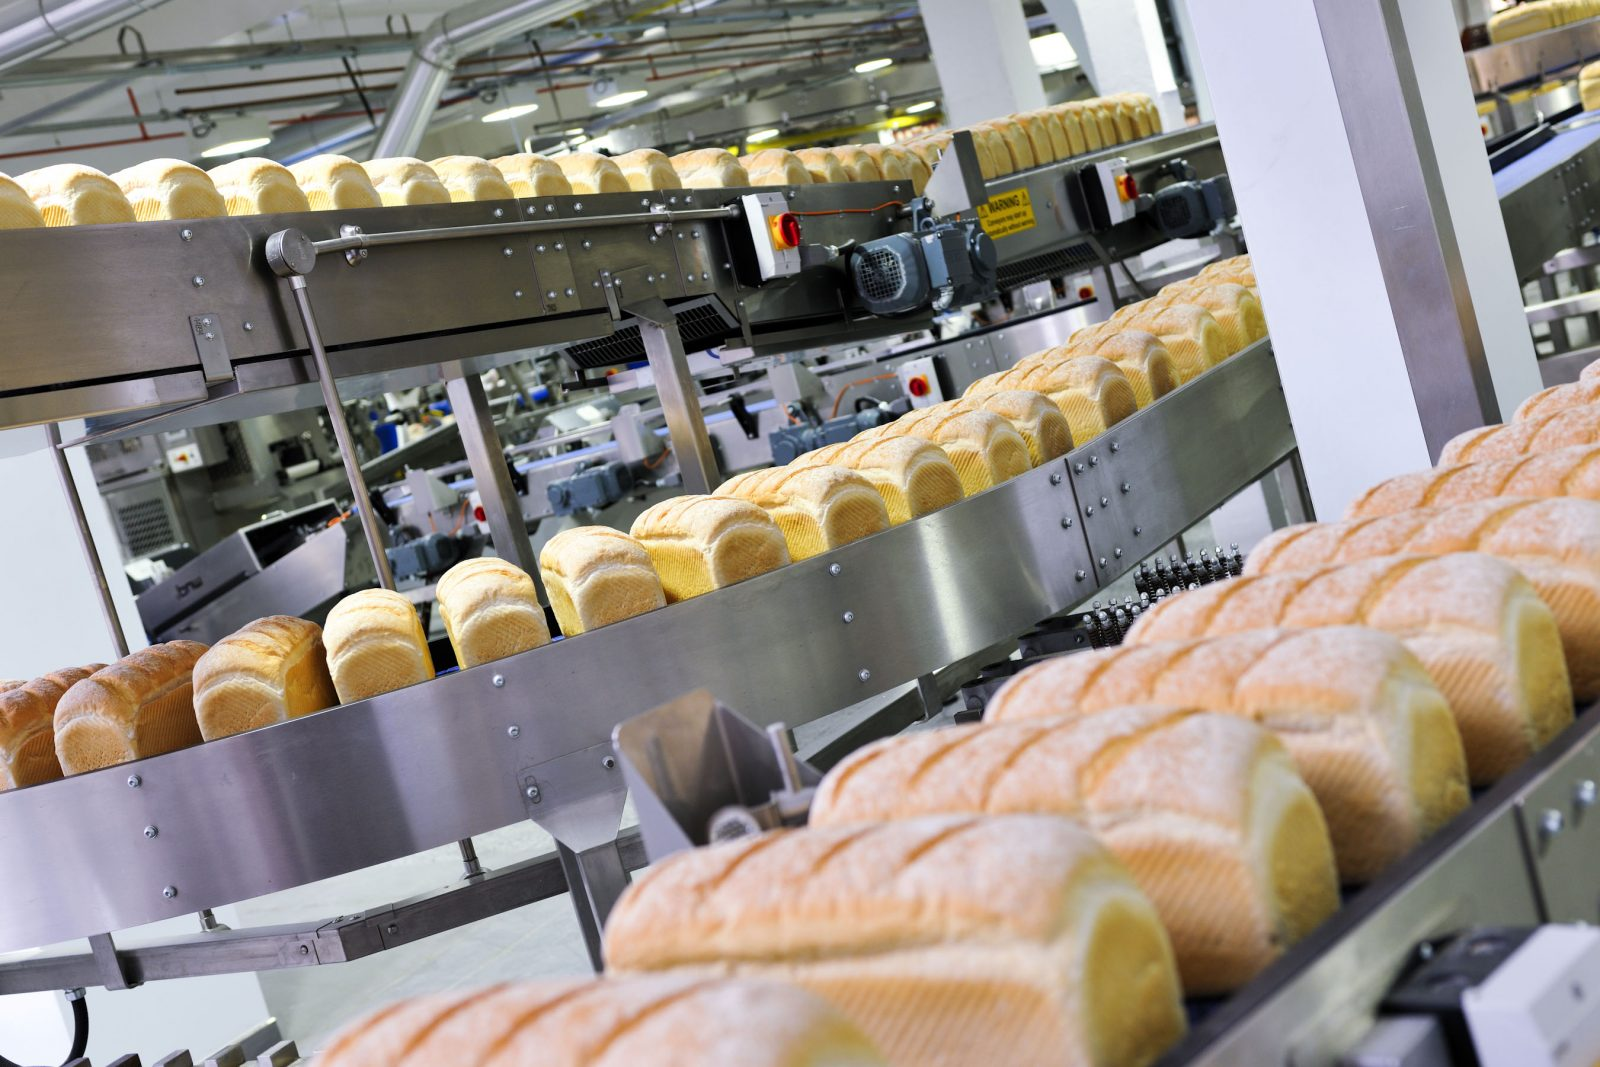 Manufacturing dietary bread and bakery products